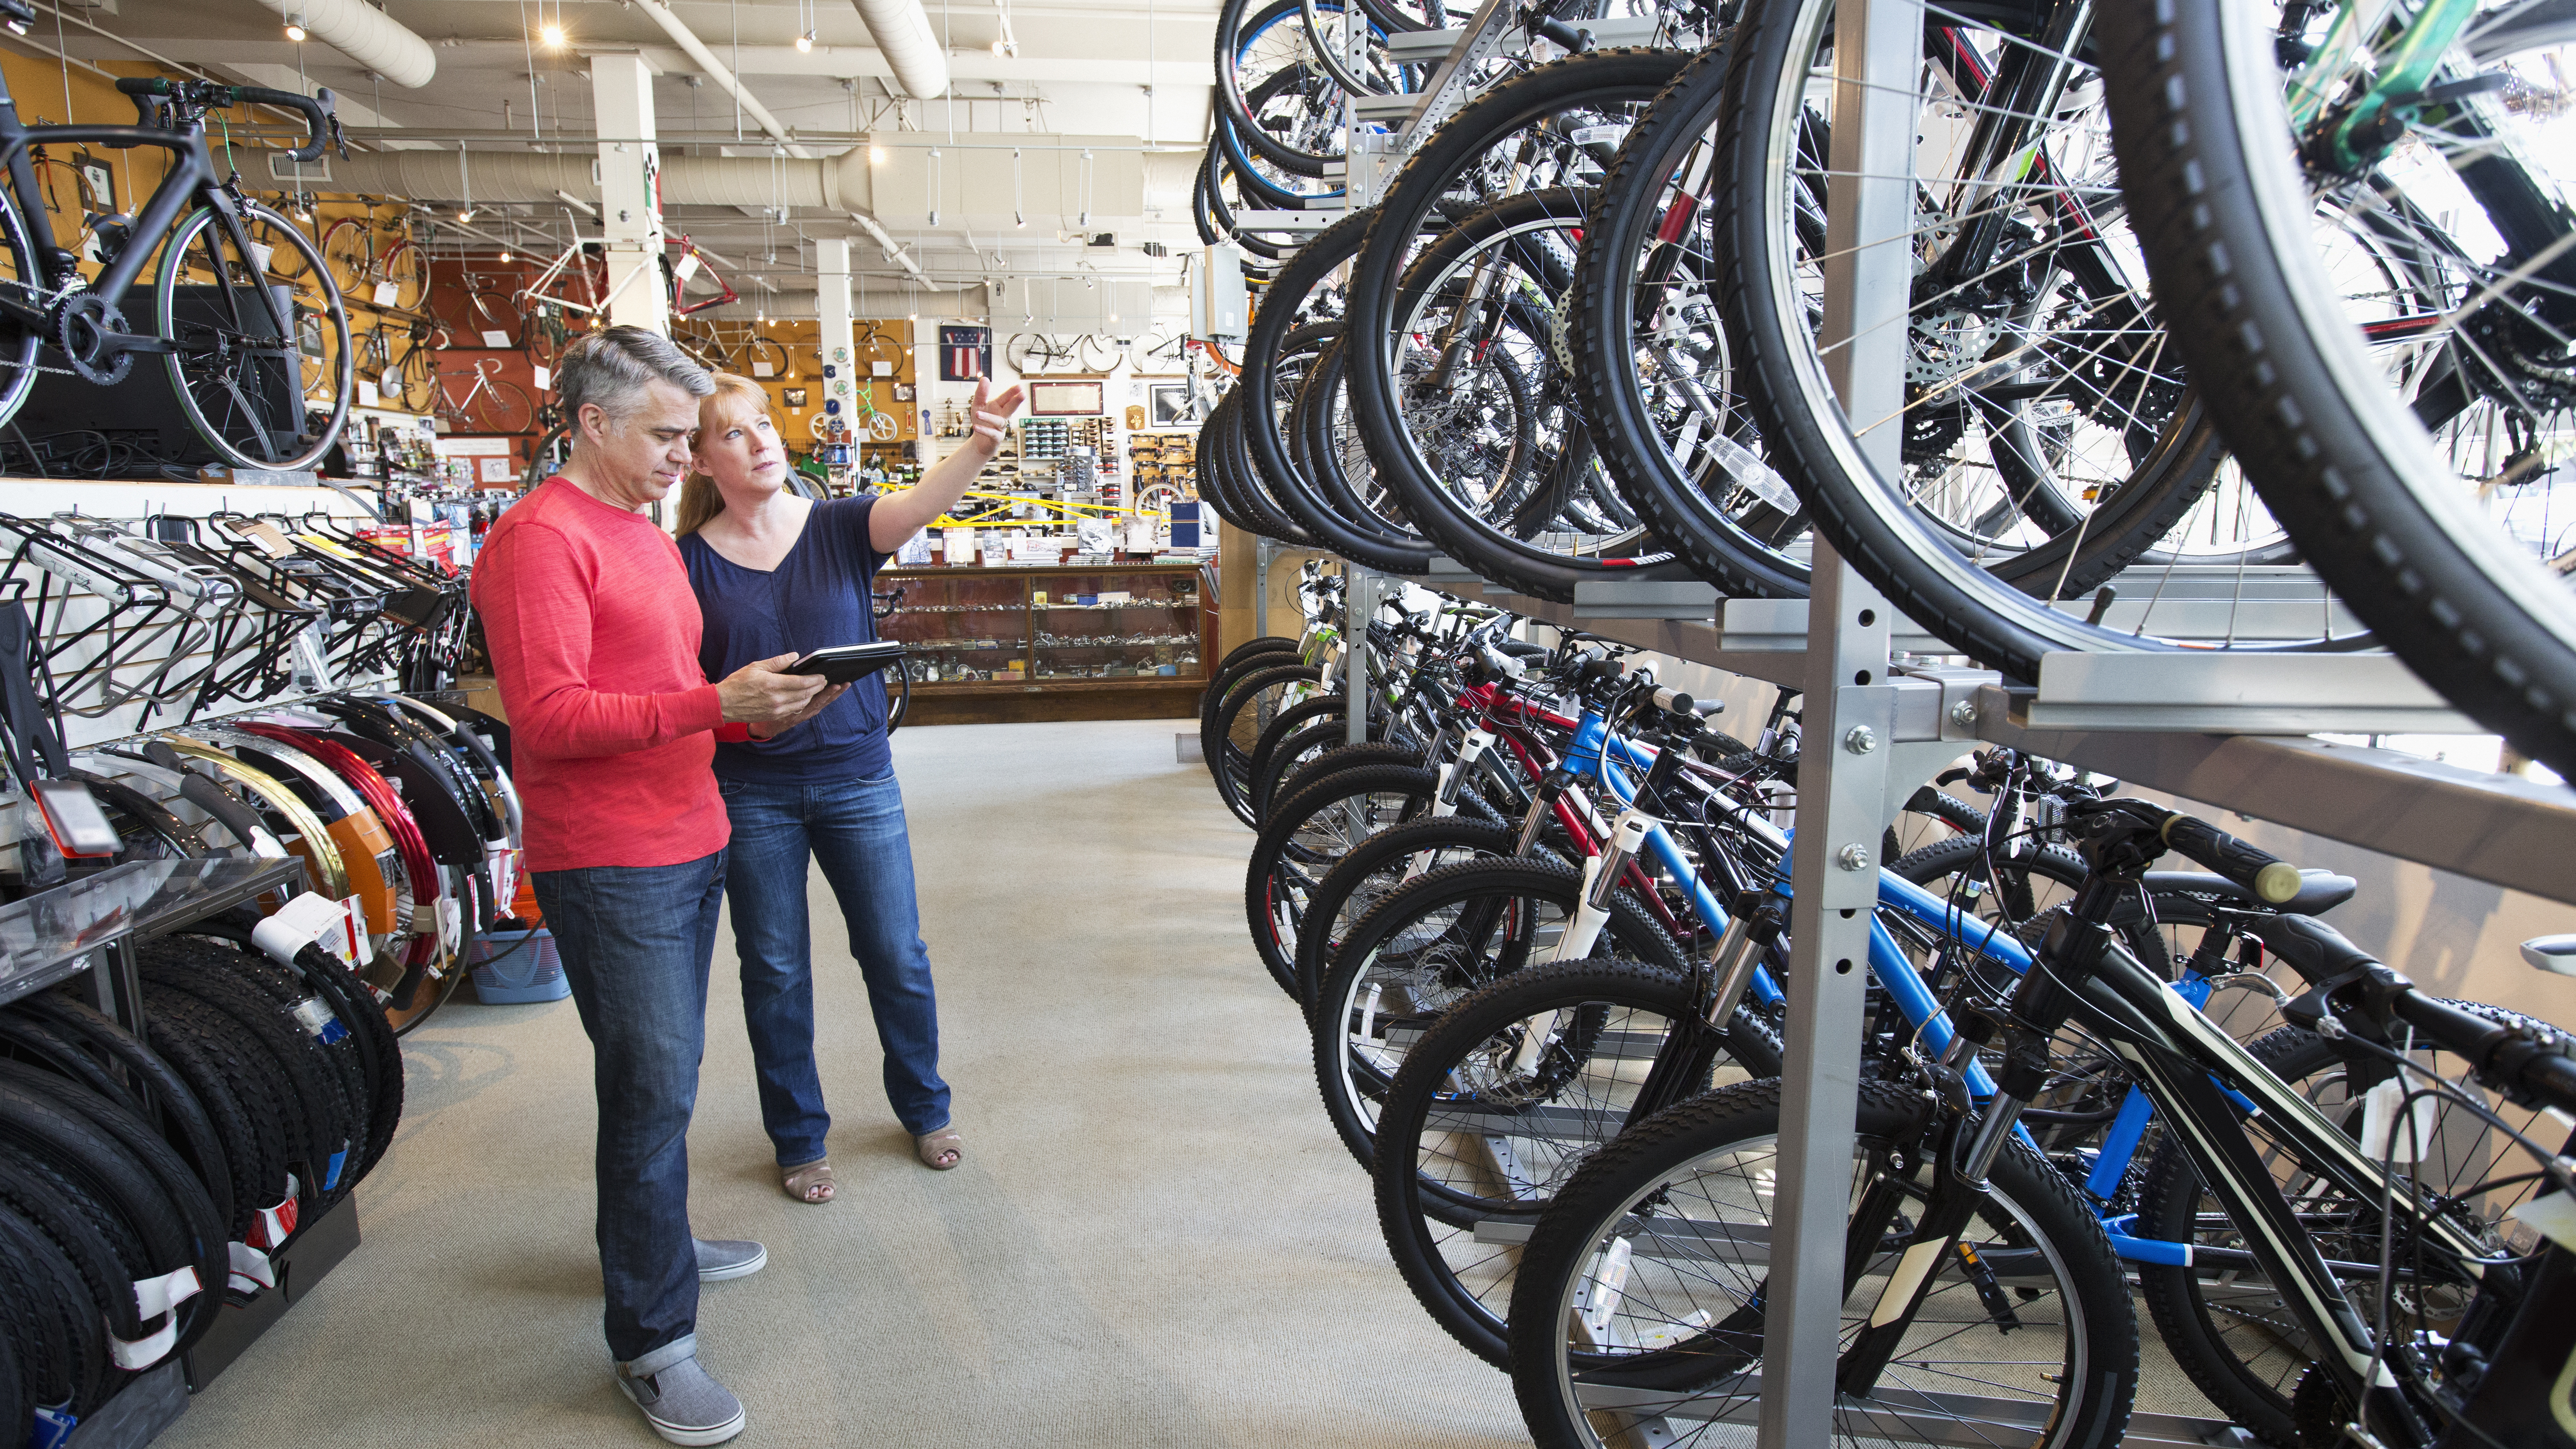 Salesman showing bicycles to customer in bicycle shop